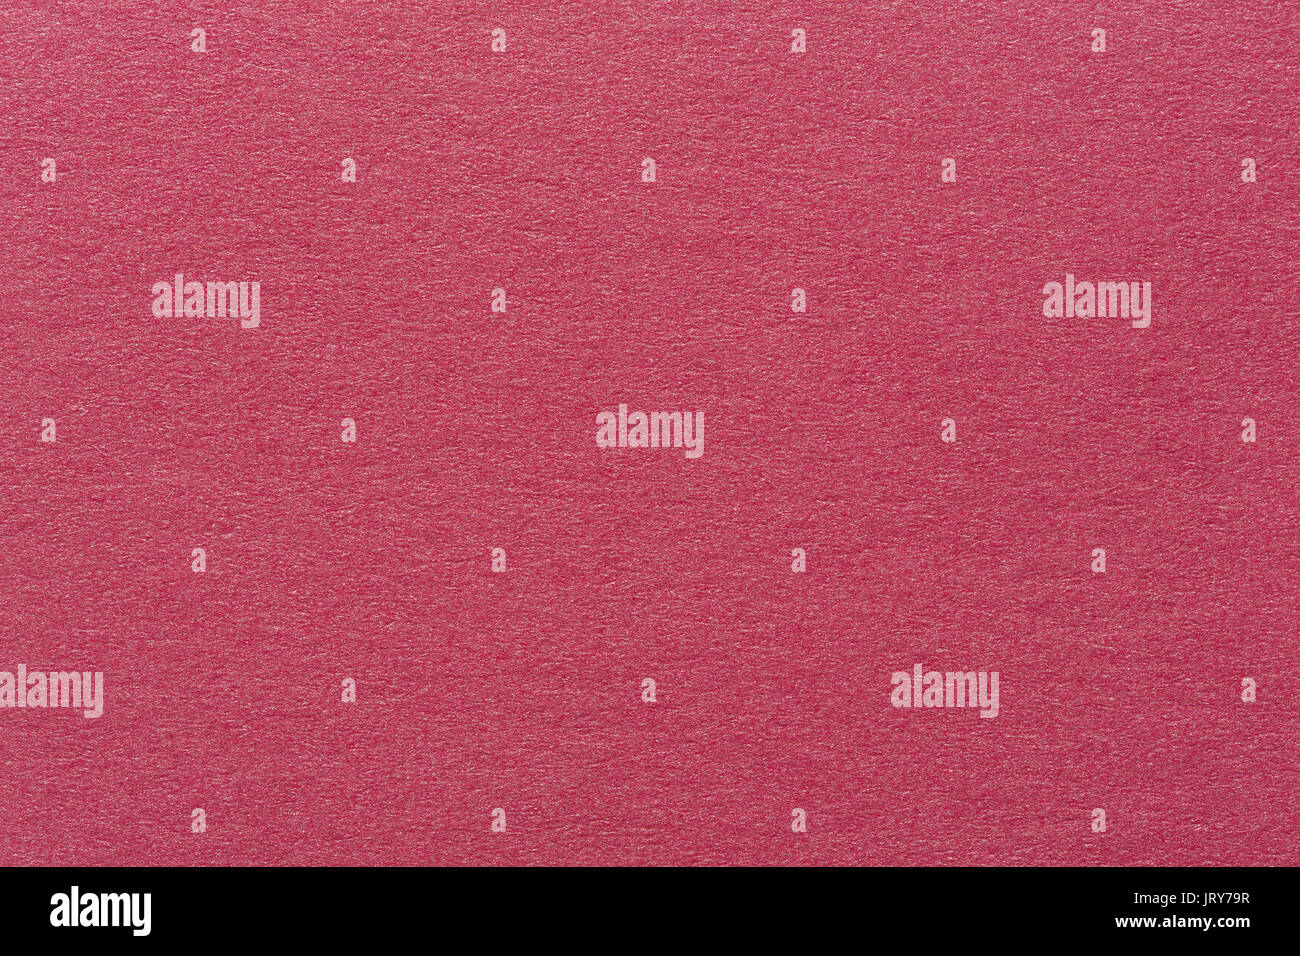 A textured red background with a subtle screen pattern. - Stock Image